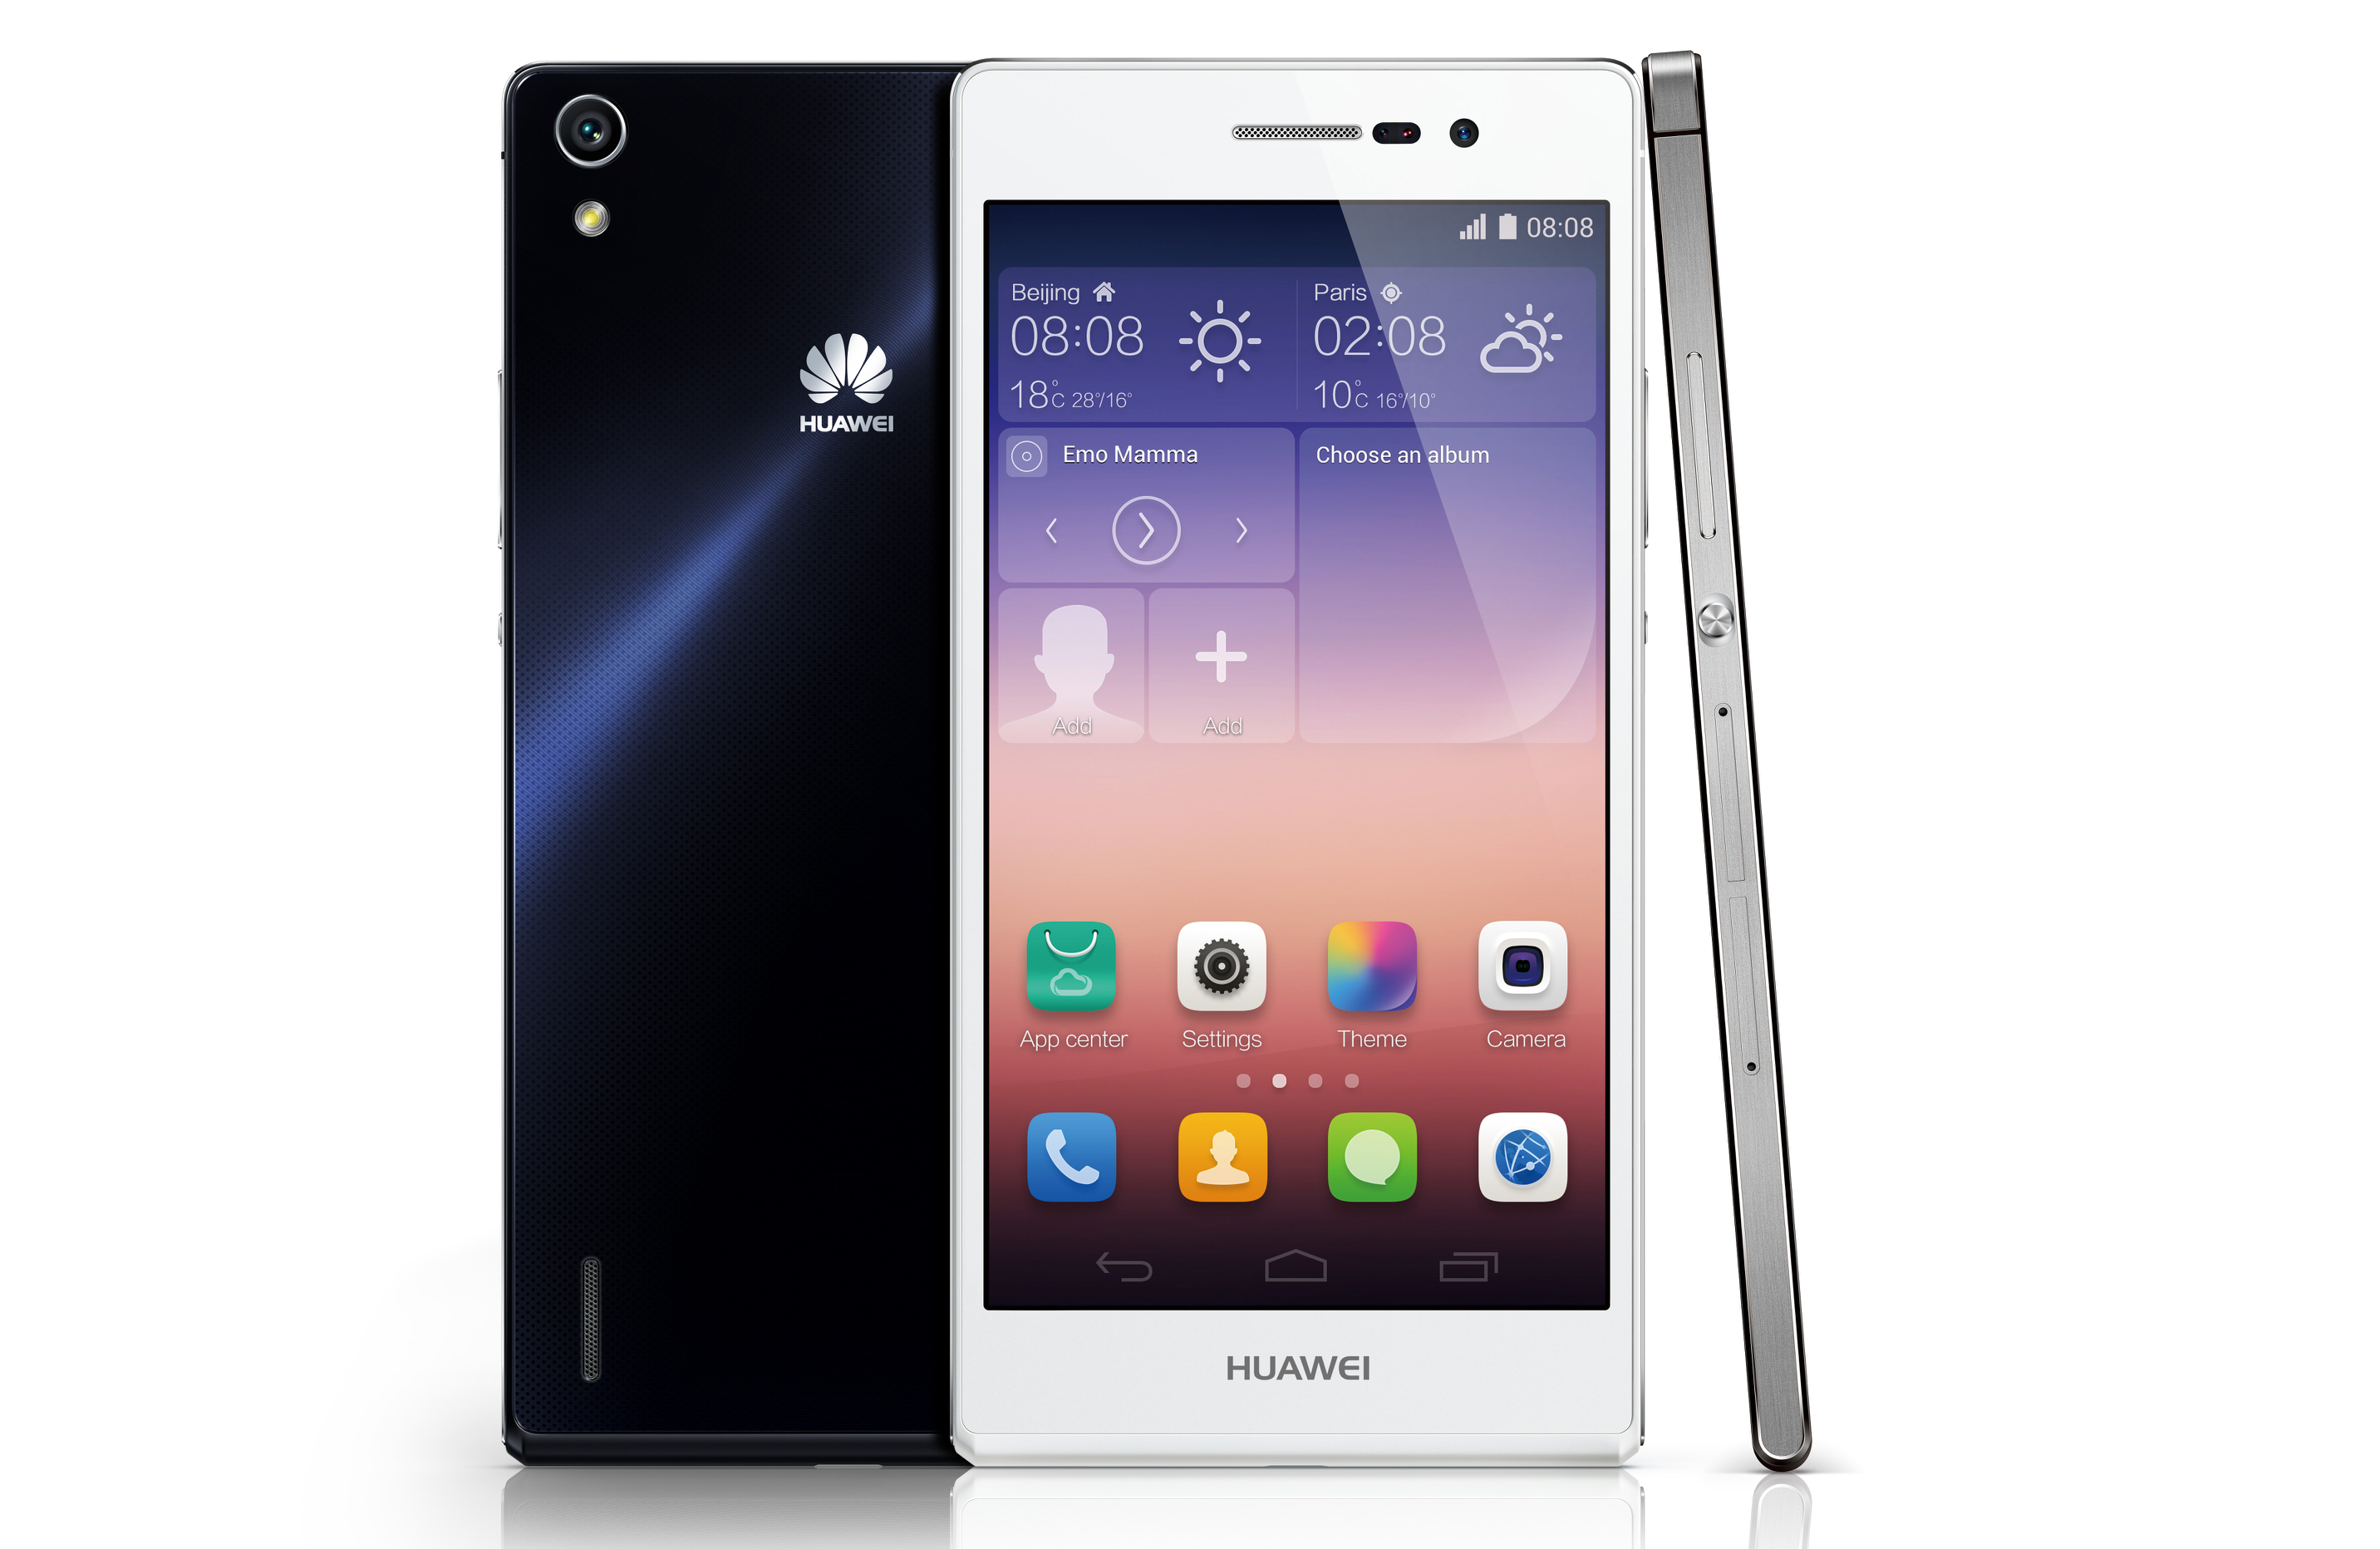 Huawei Ascend P7 is updated to Android 5.1.1 Lollipop 1